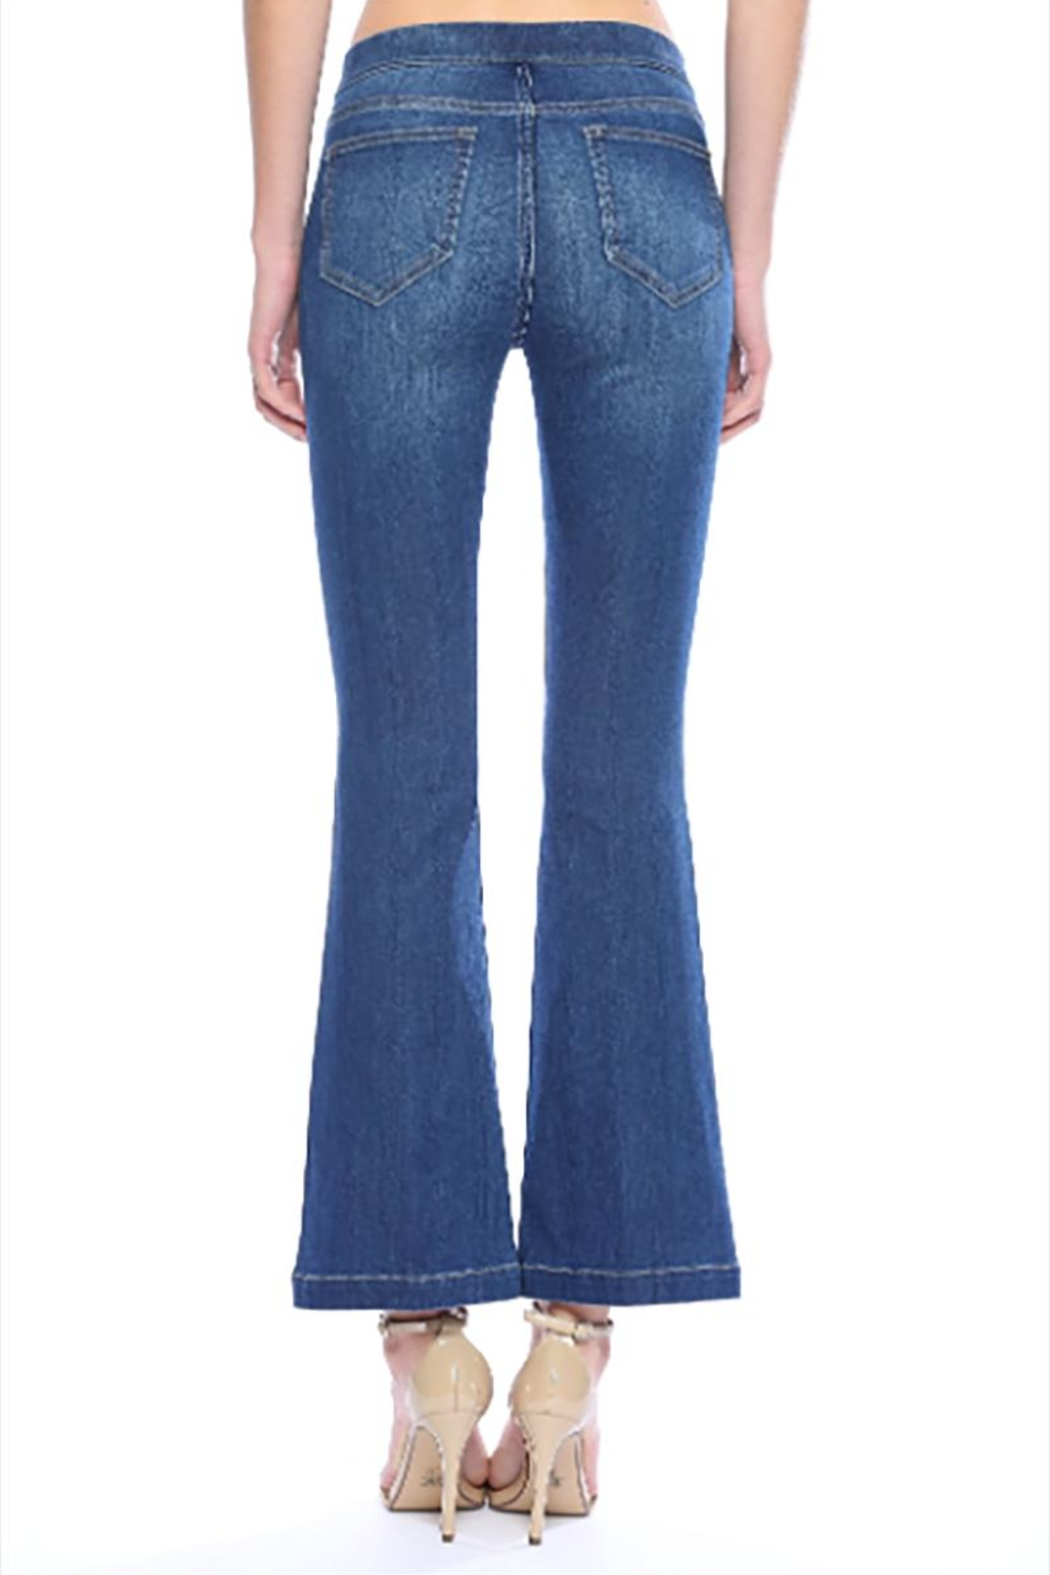 Cello Jeans Petite Dark Pullons - Side Cropped Image